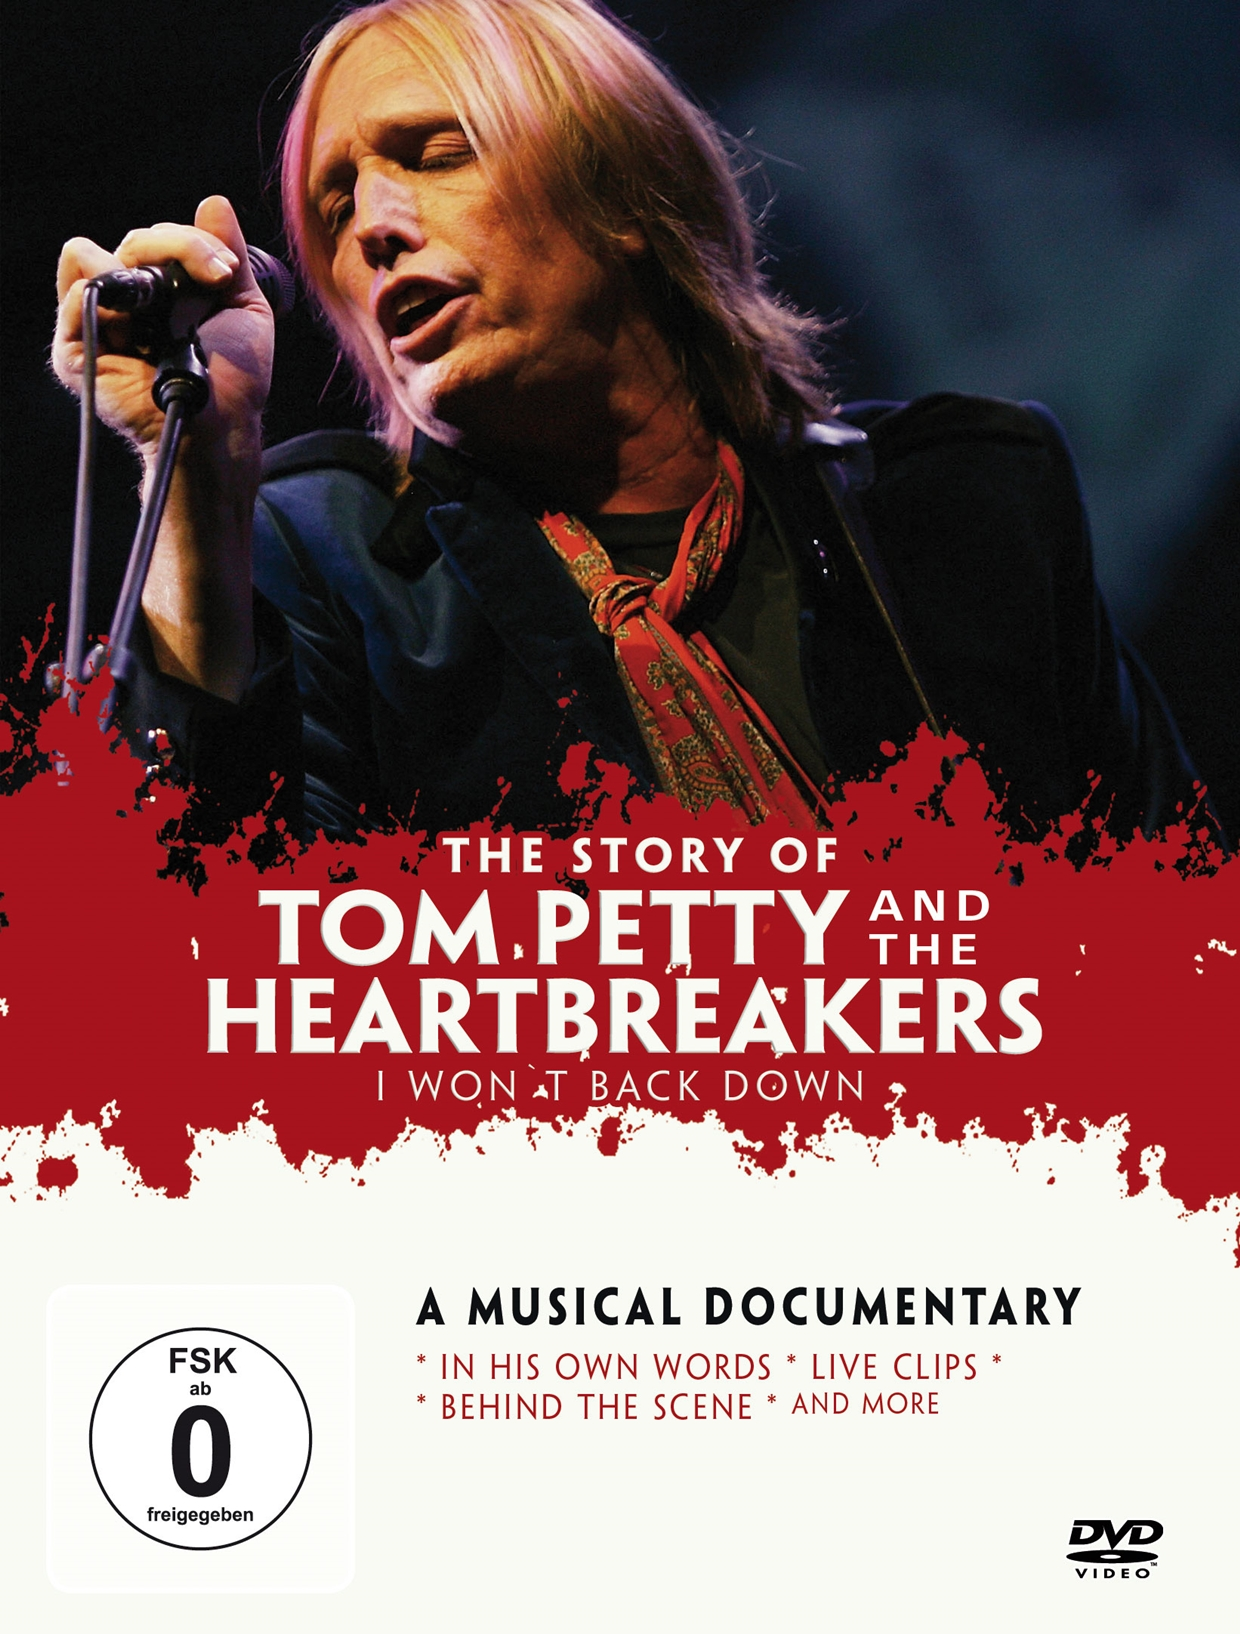 New - Tom Petty & The Heartbreakers: I Wont Back Down DVD